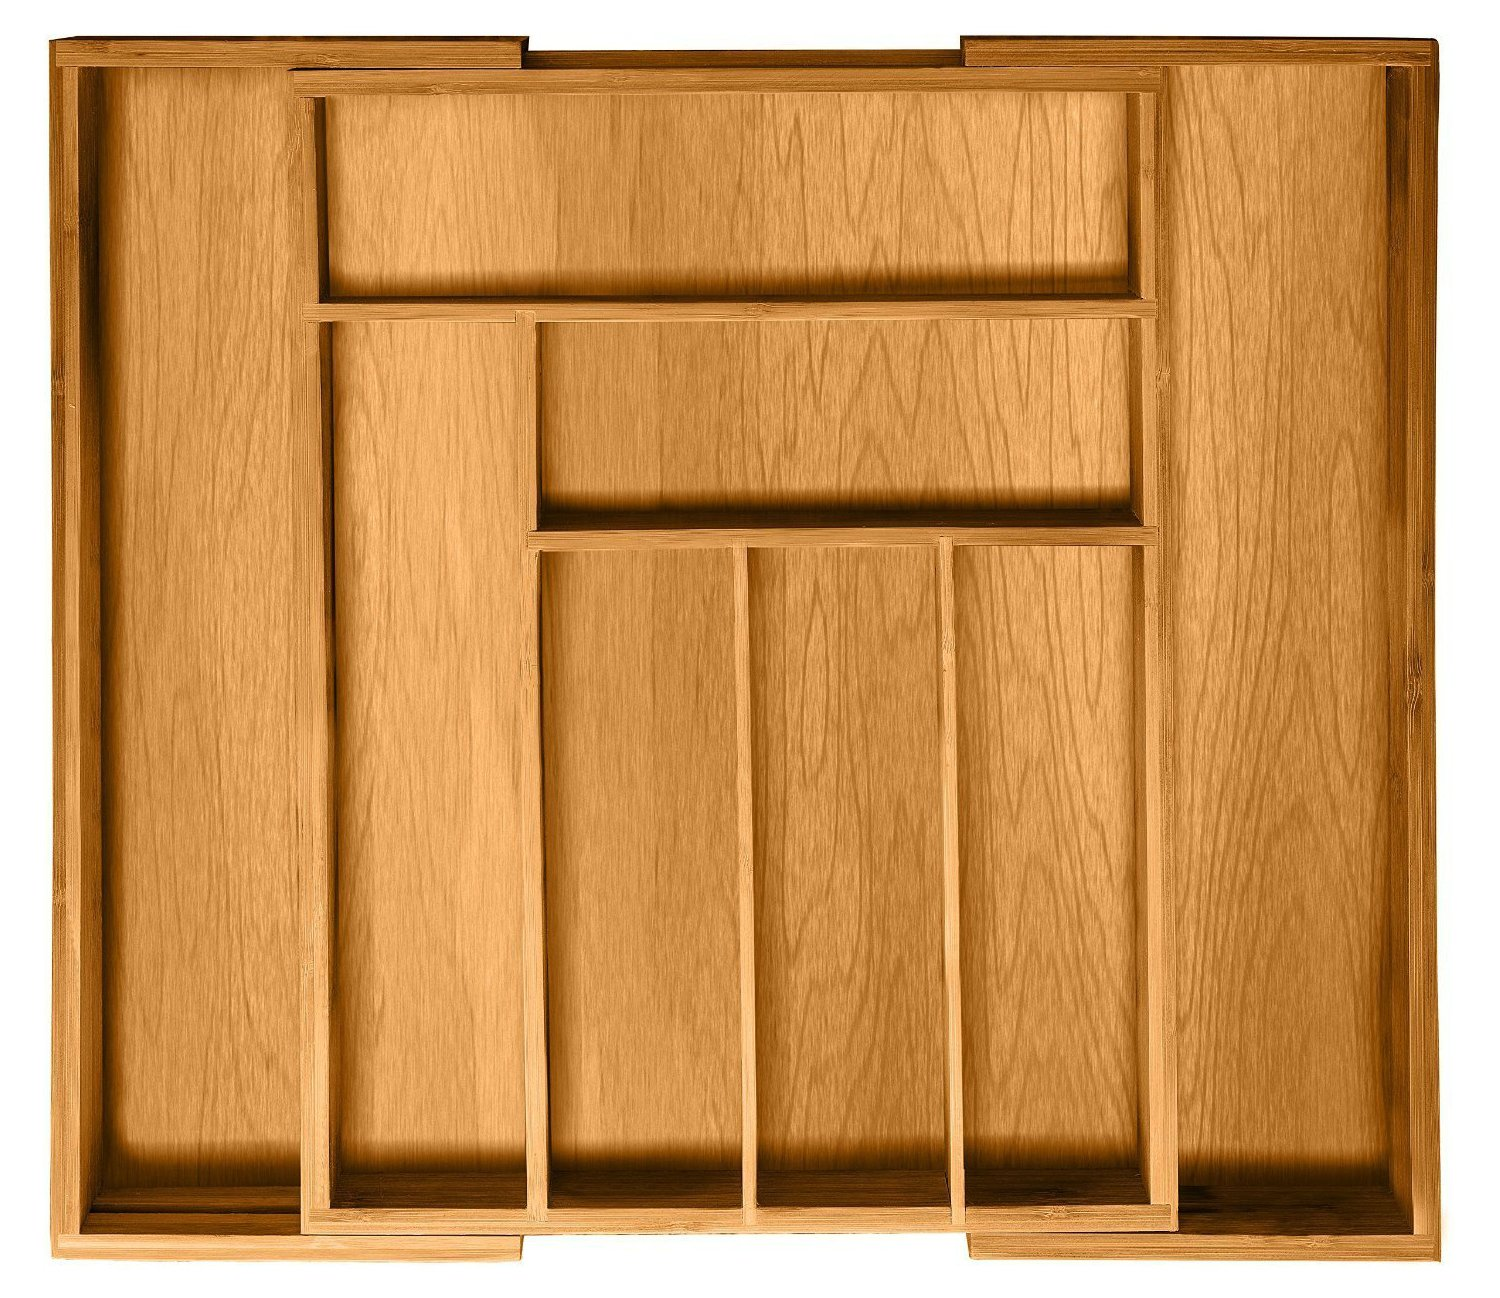 Bamboo Kitchen Utensil Drawer Organizer - Expandable Silverware Tray Cutlery Organizer | 8-Compartments Flatware Holder